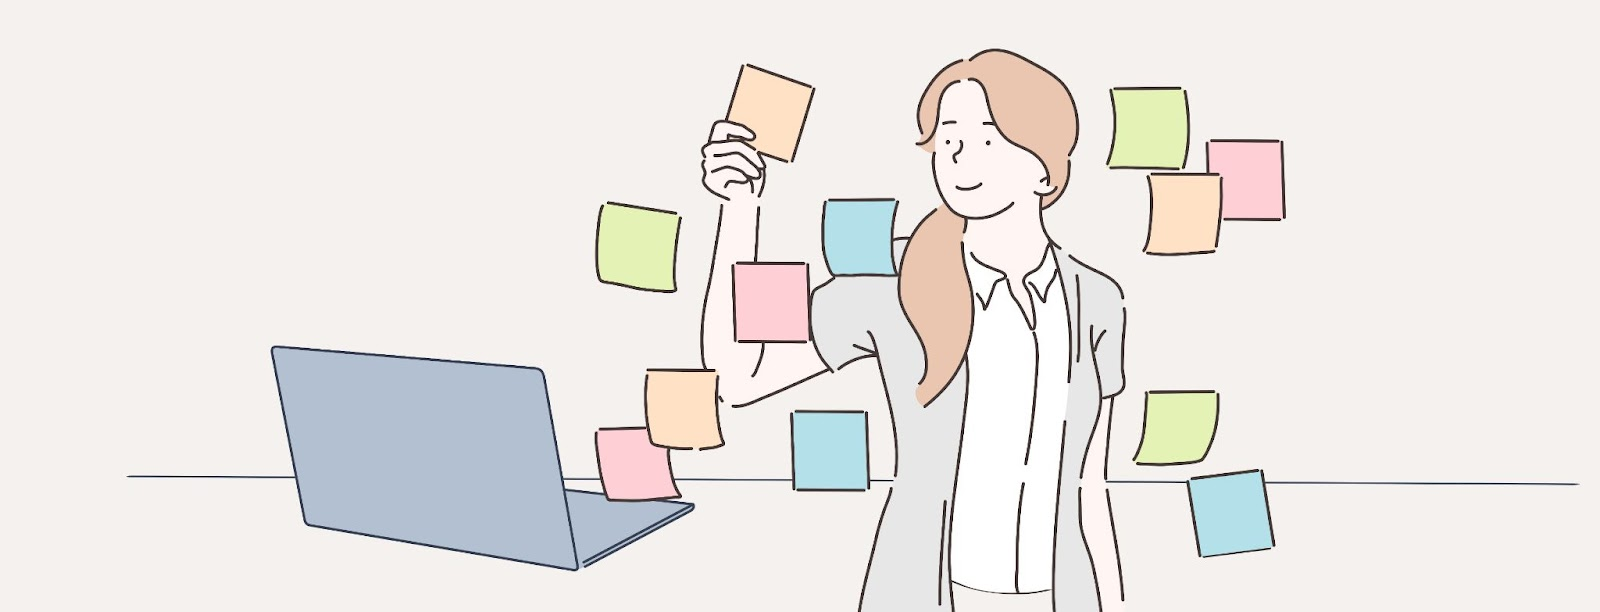 Illustration of a woman mapping out ideas on post it notes